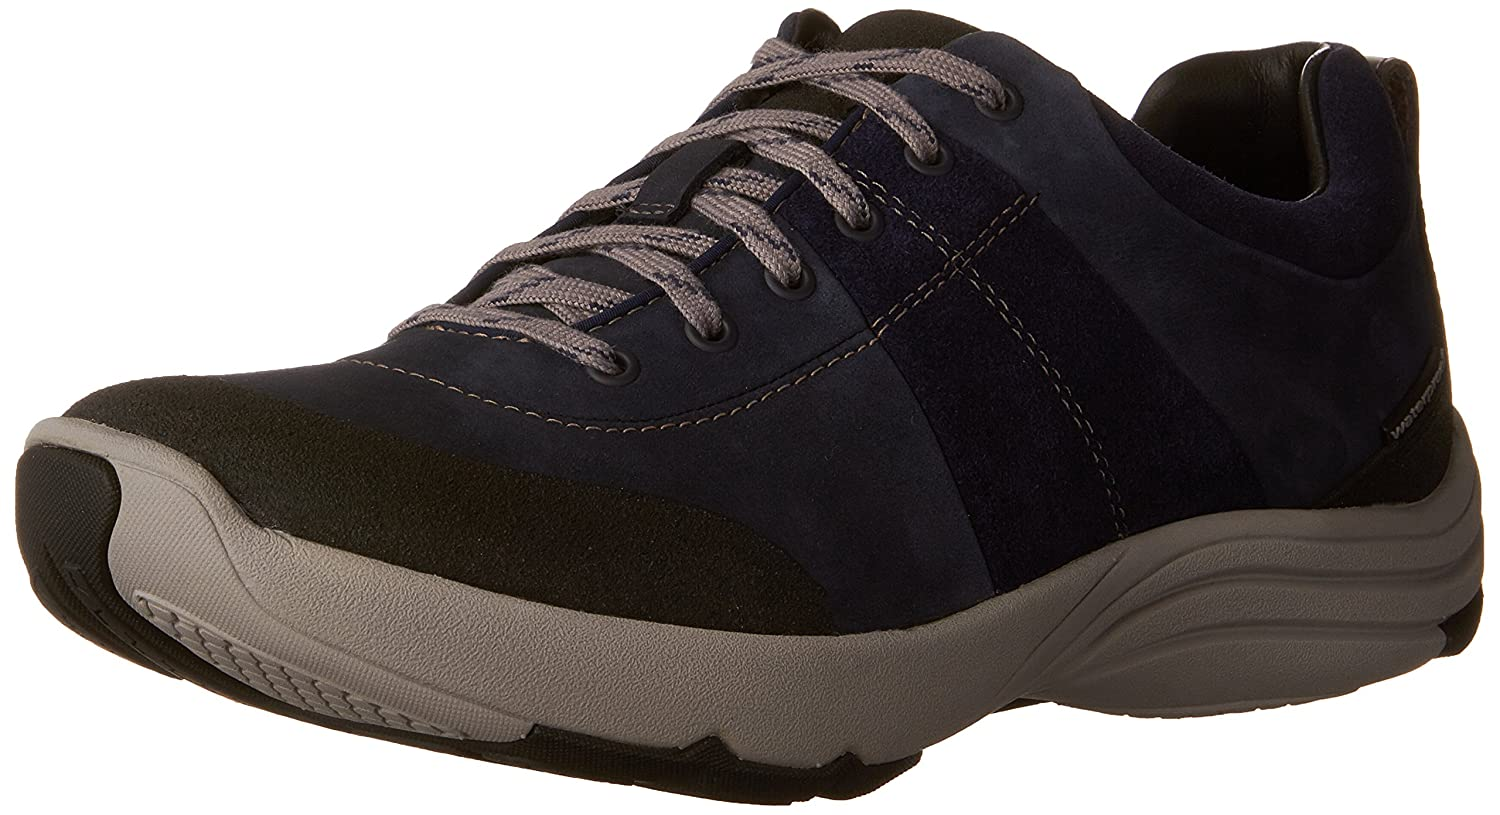 Navy Nubuck Clarks Womens Wave Andes Walking shoes